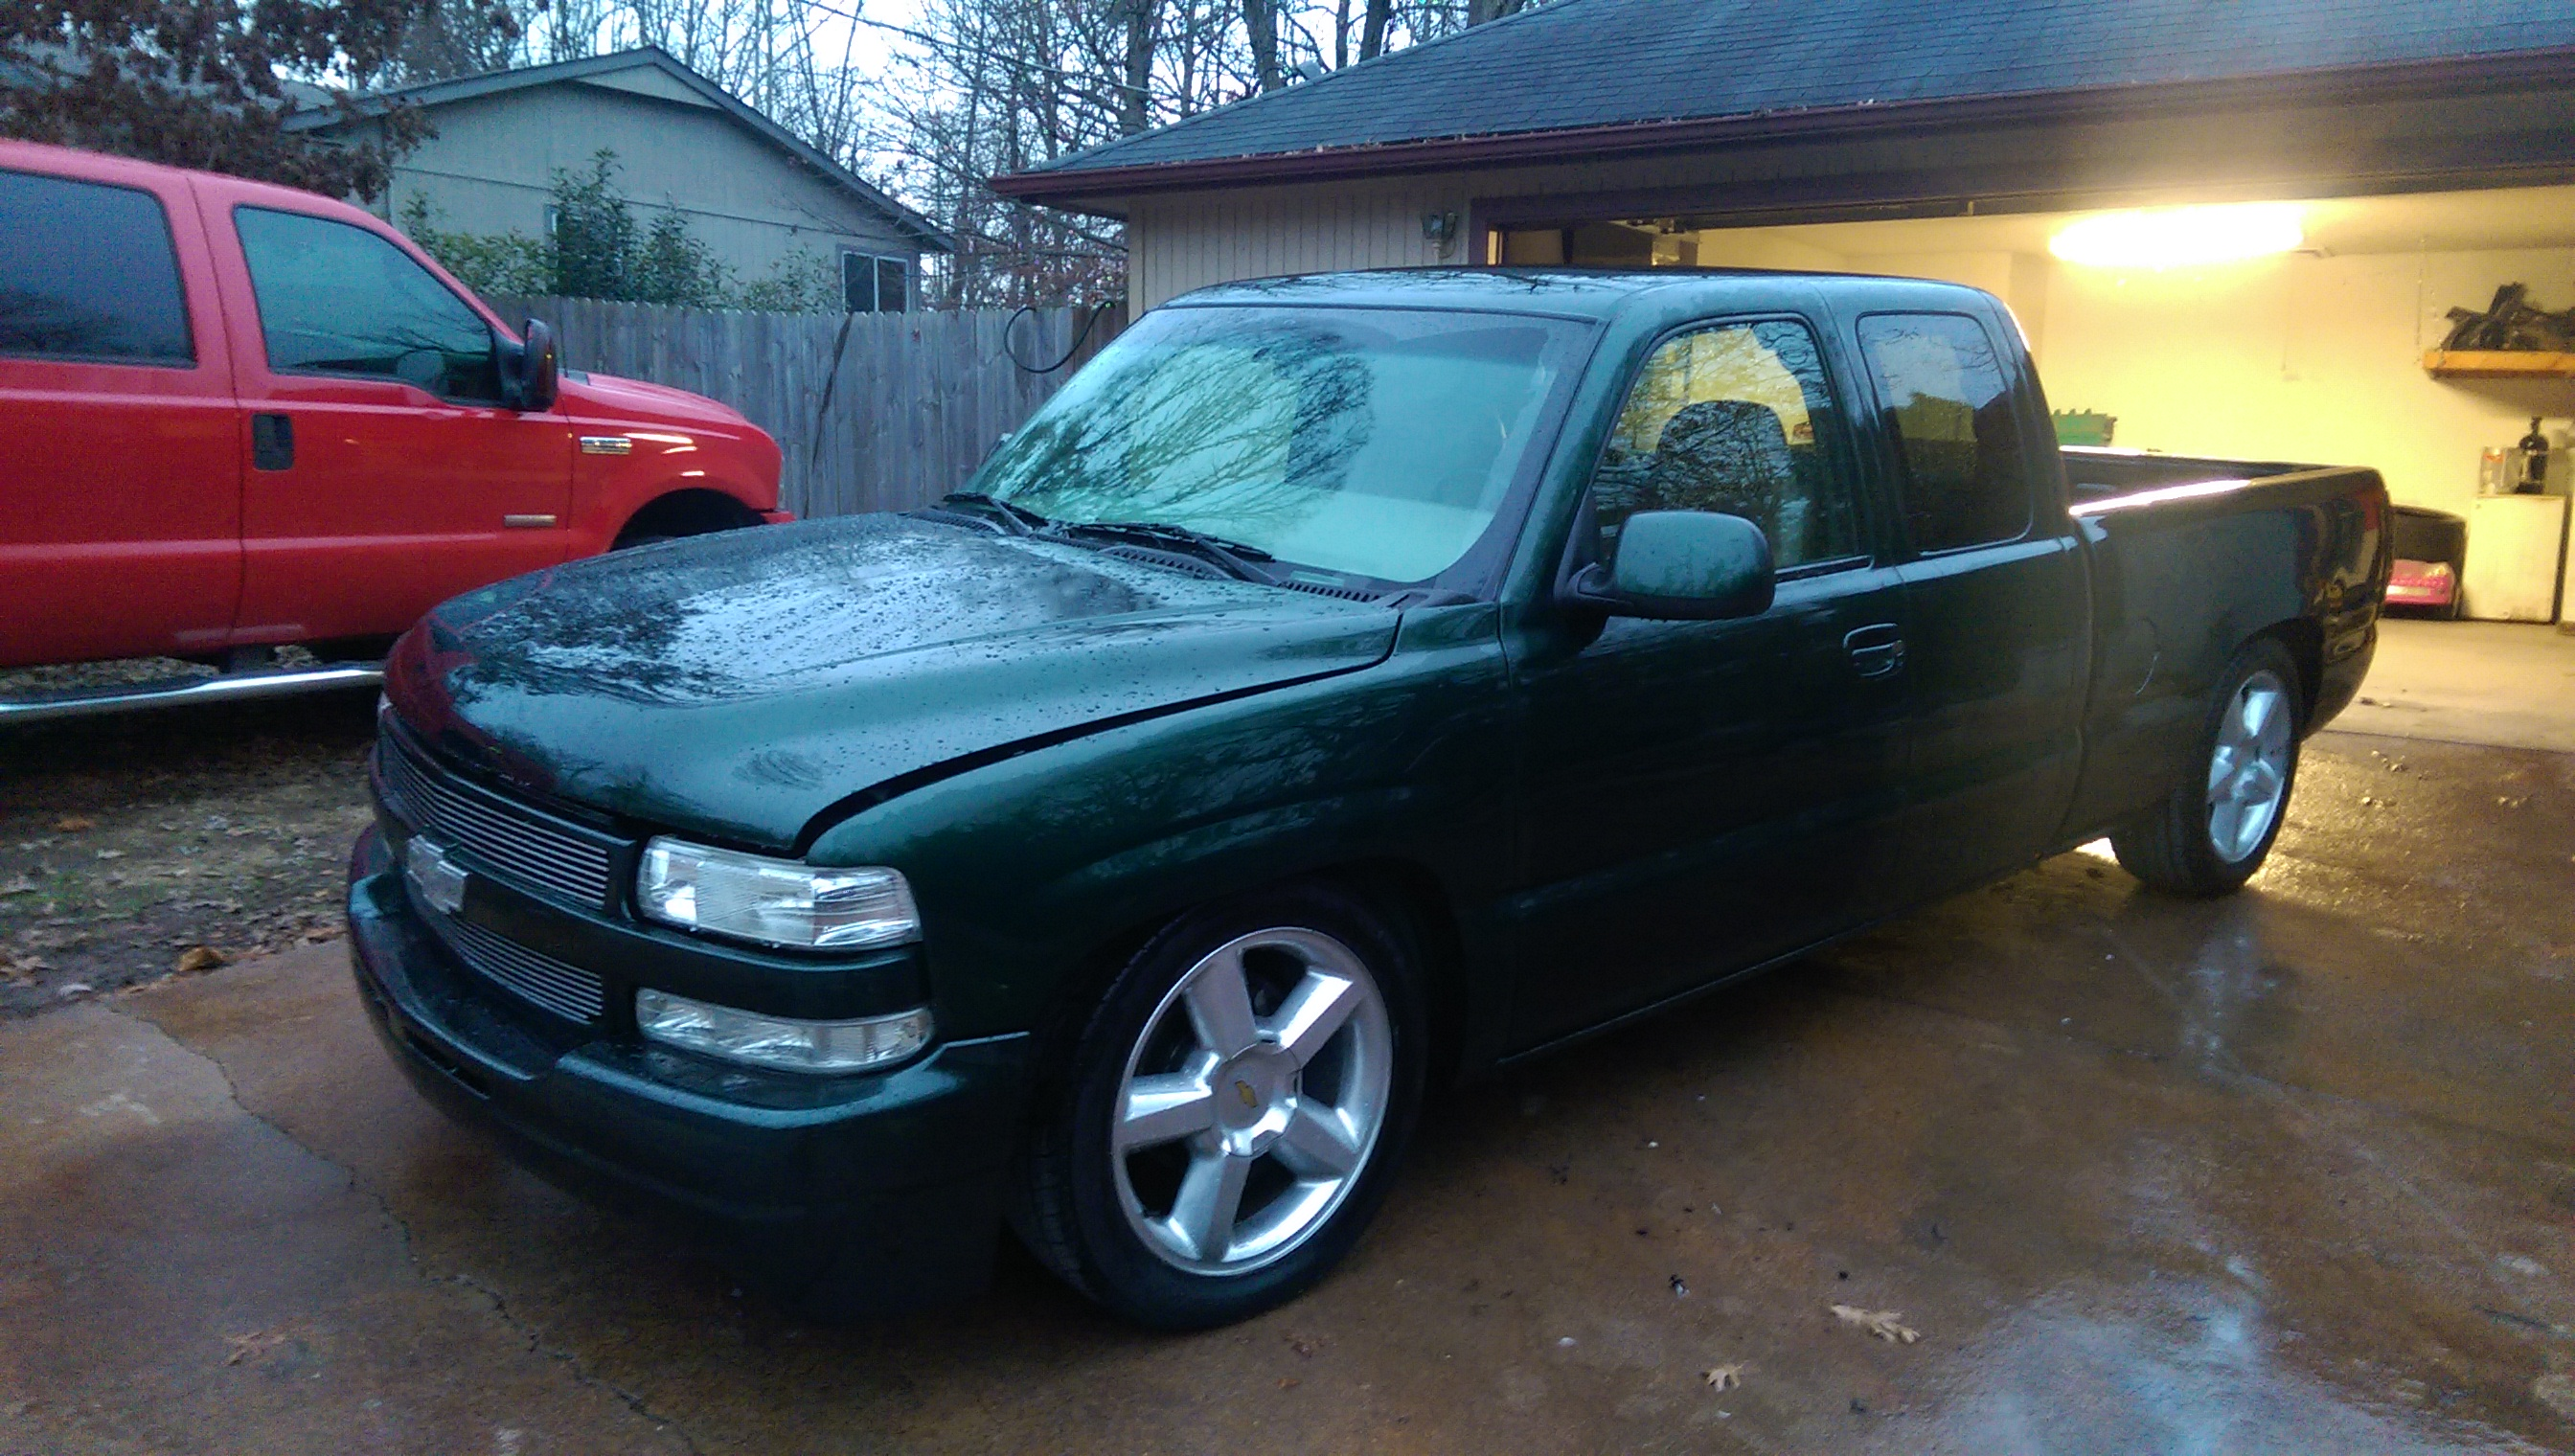 Wts Wtt2001 Chevy Silverado Extended Cab 2wd 5 3 T56 6